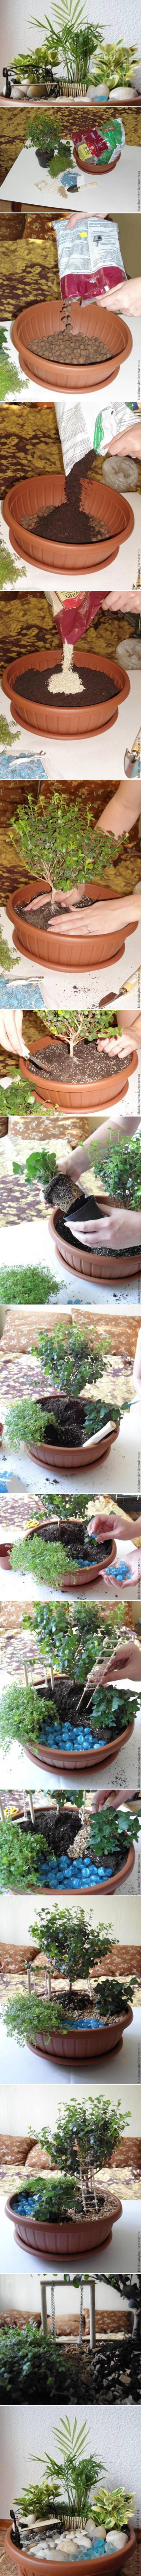 How-to-make-Pot-Mini-Garden-step-by-step-DIY-tutorial-instructions-512x9353